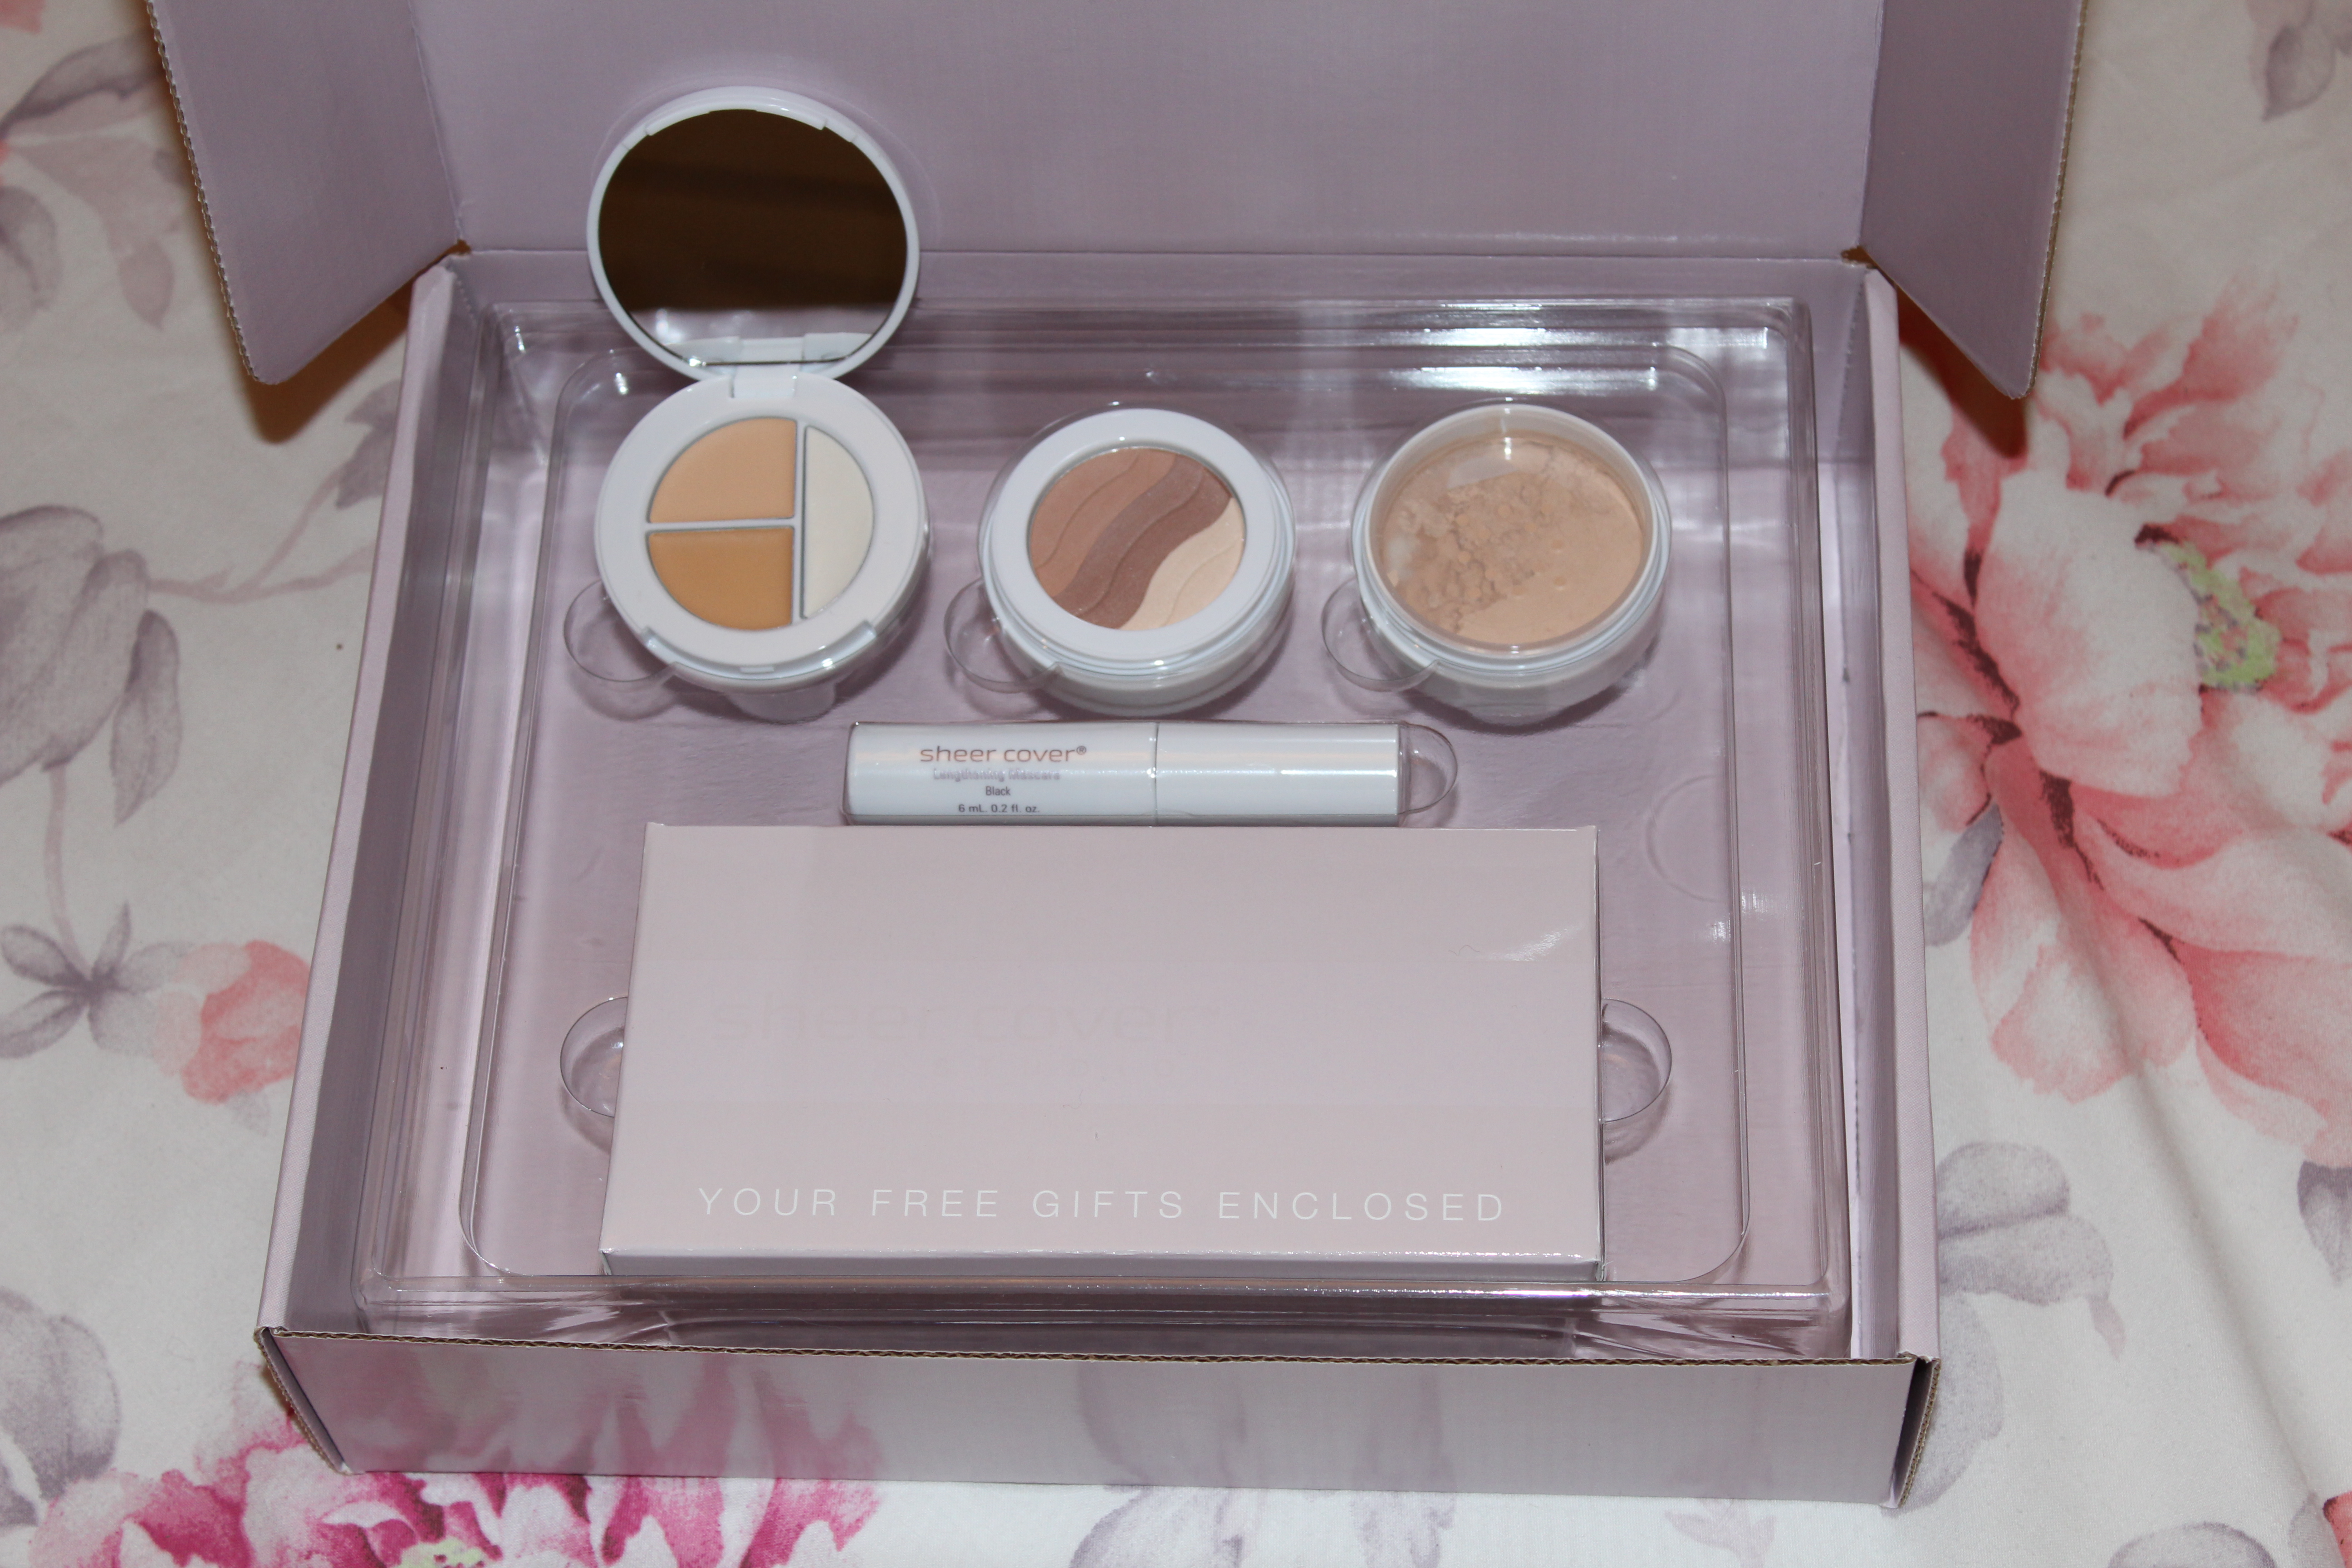 Today i didnt fancy wearing a lot of makeup so thought it would be the perfect time to try this mineral makeup introductory kit from sheer cover